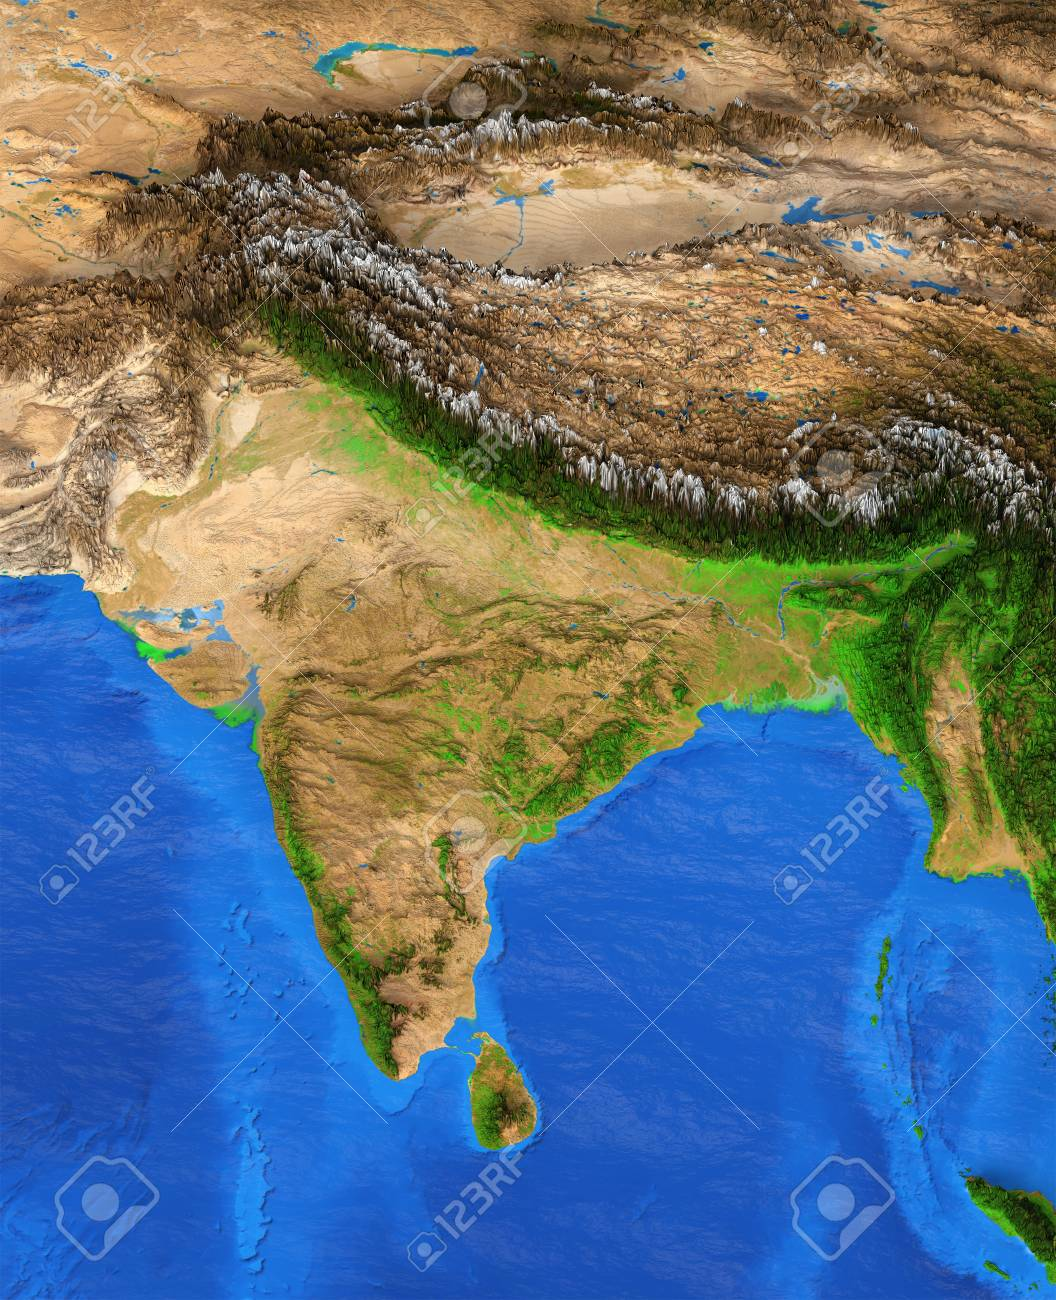 Map Of India  Detailed Satellite View Of The Earth And Its Landforms     Map of India  Detailed satellite view of the Earth and its landforms   Elements of